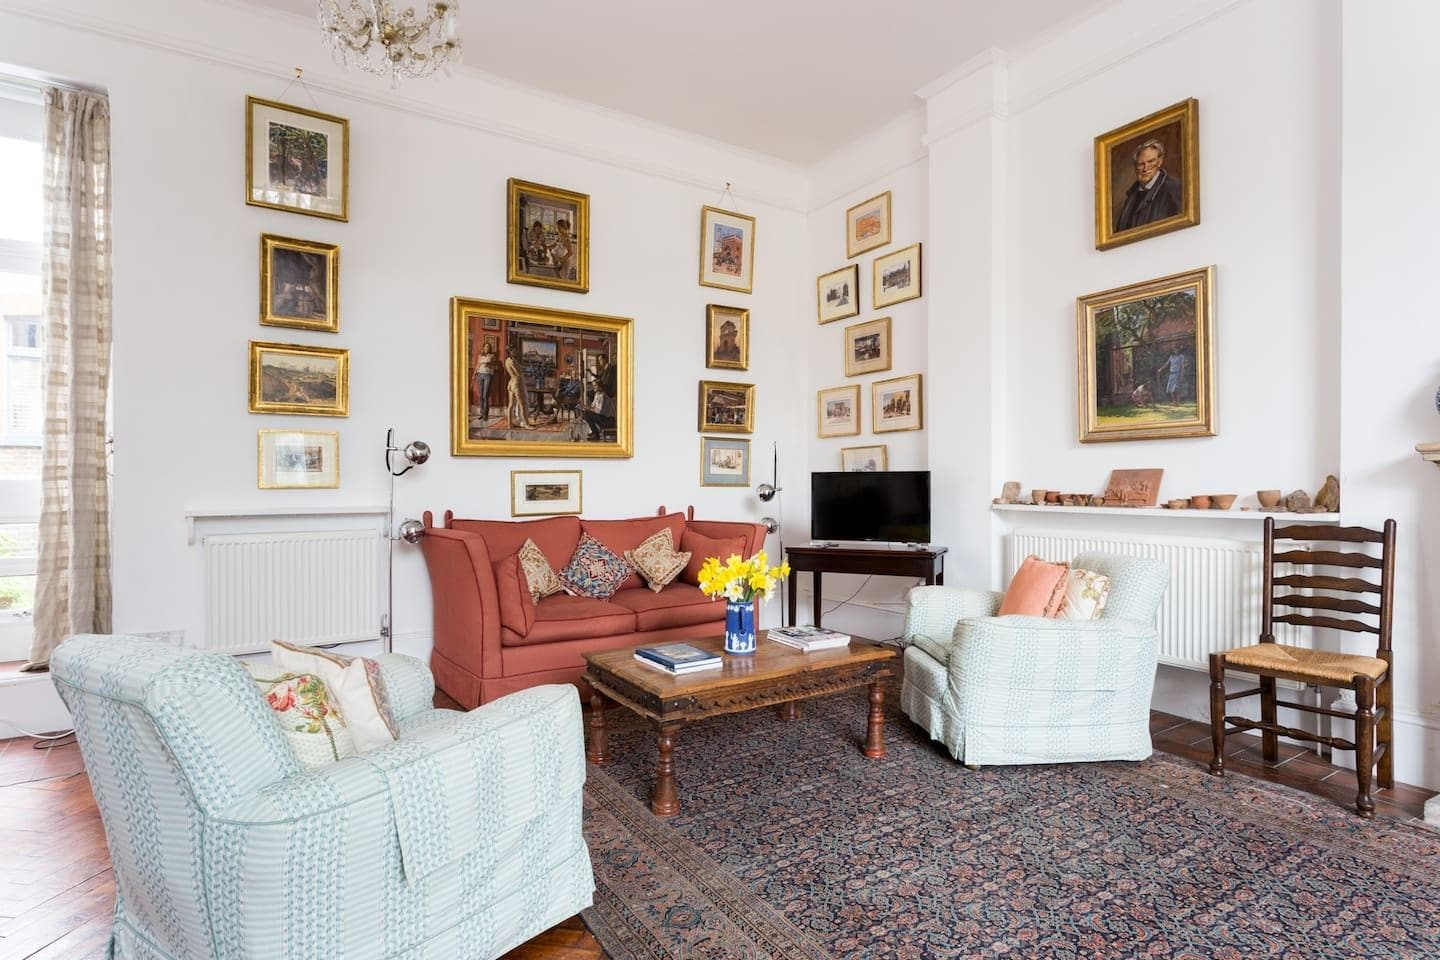 Property Image 1 - Creative Artist's Apartment in South Kensington